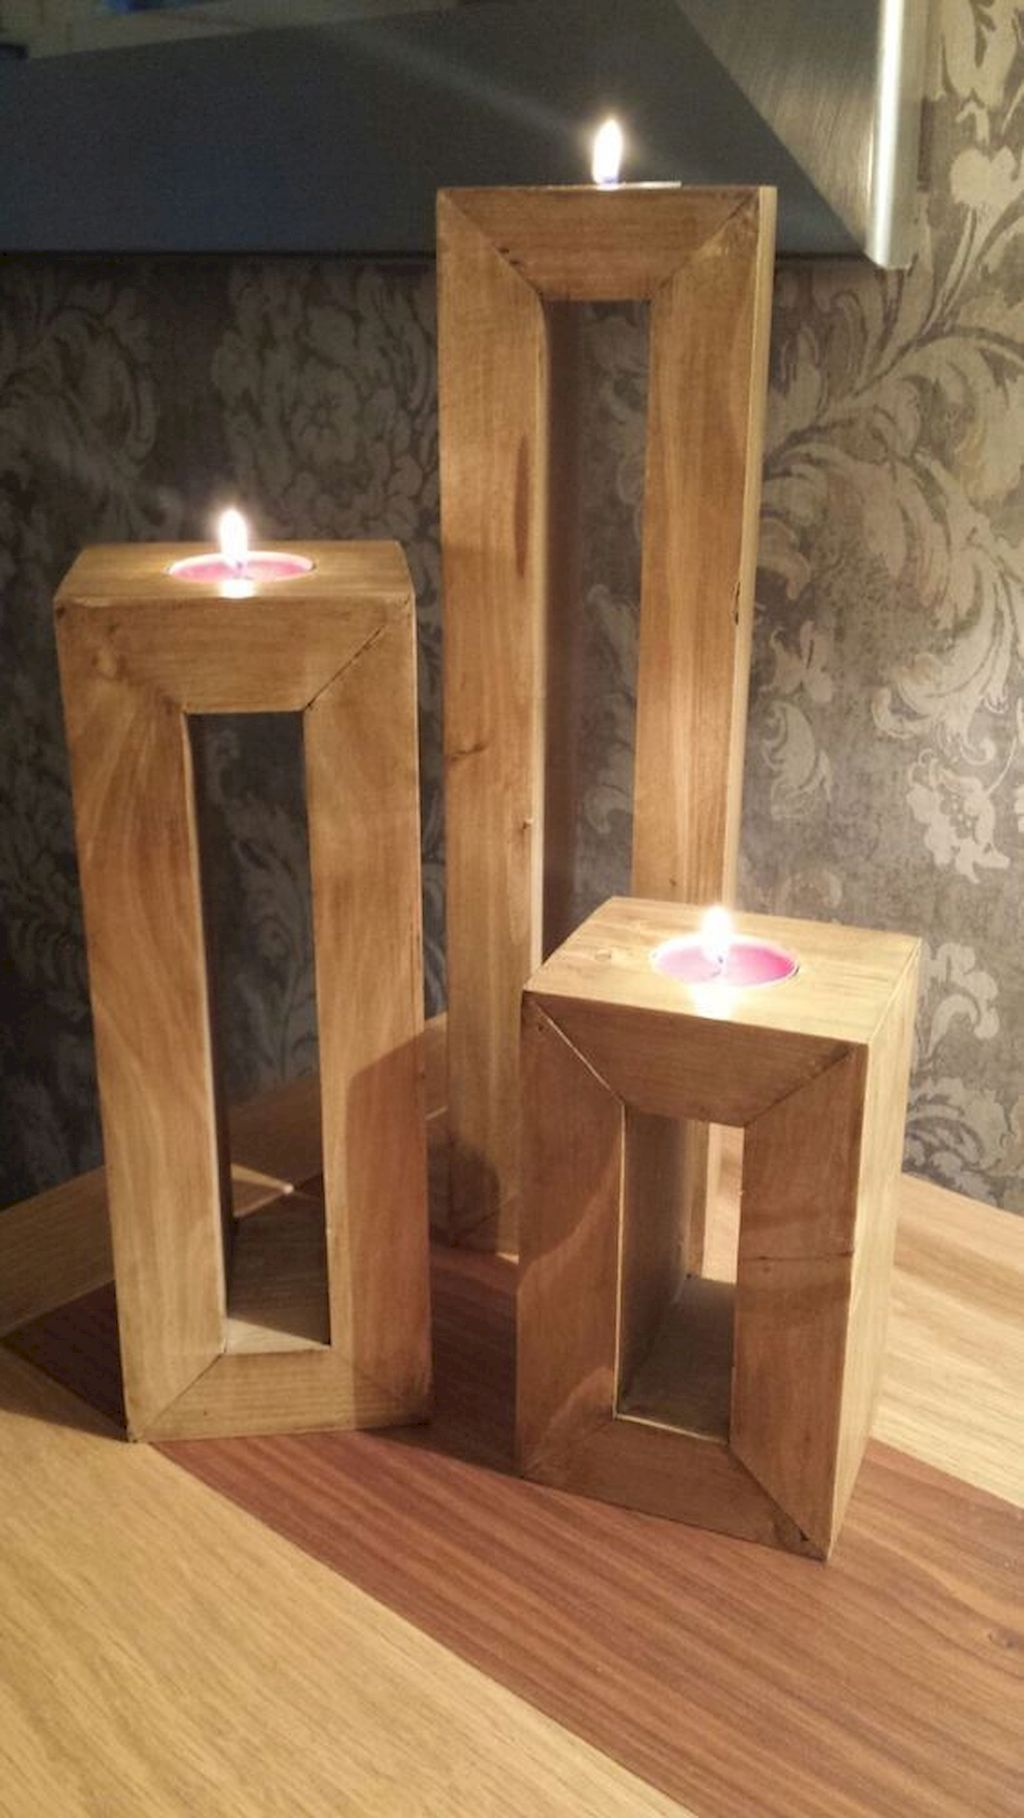 40 Easy Diy Wood Projects Ideas For Beginner 18 In 2018